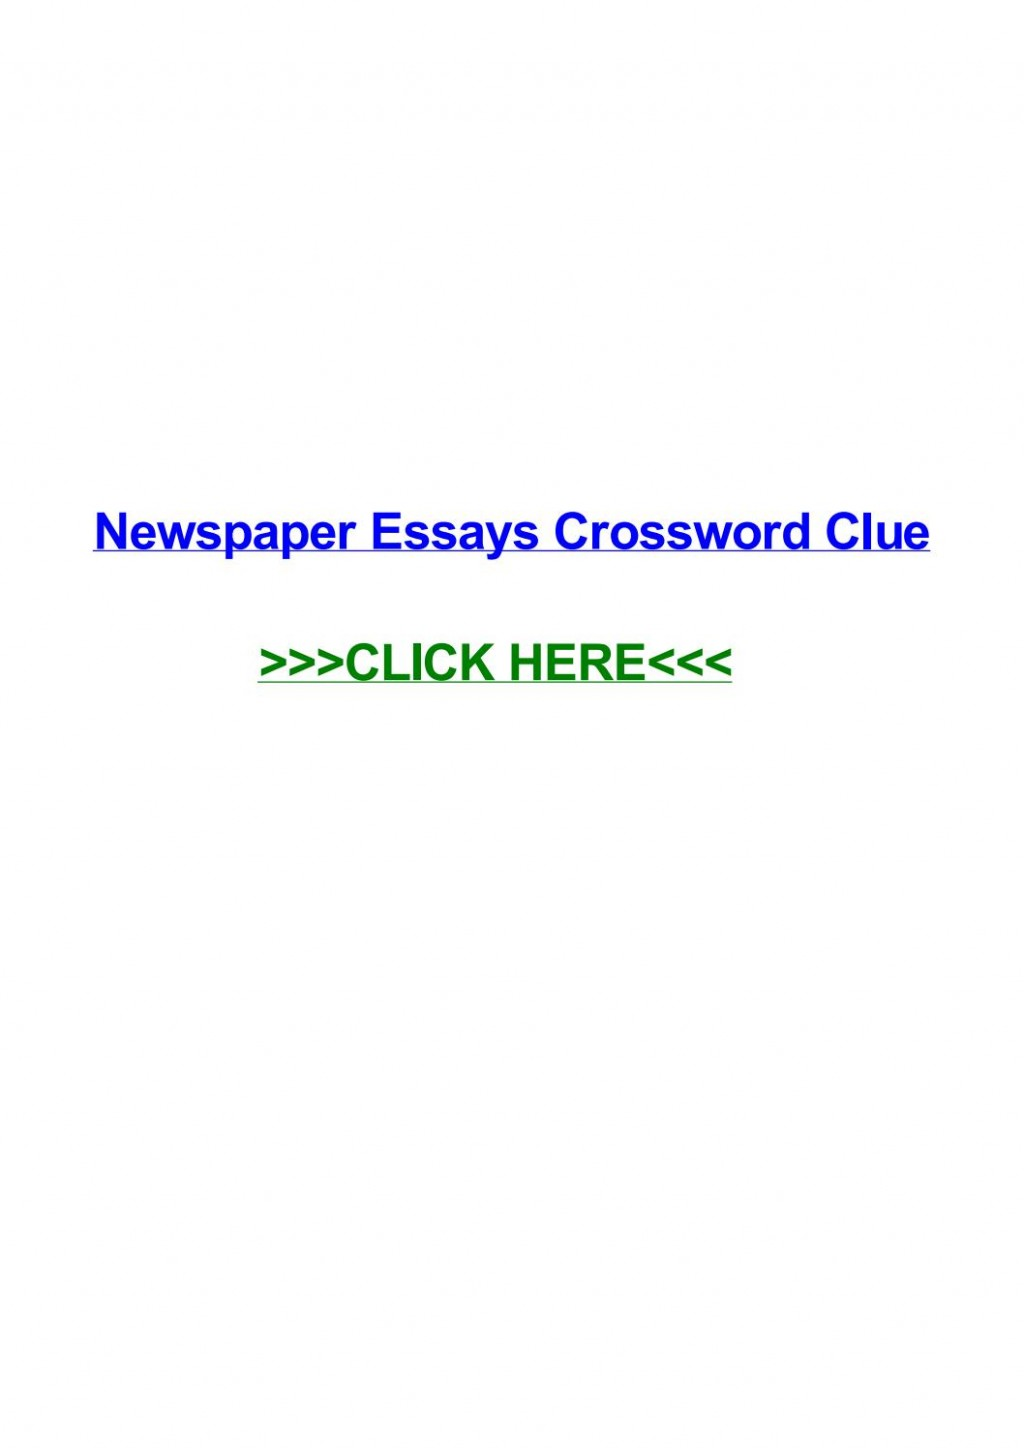 016 Political Essay Crossword Page 1 Dreaded Puzzle Clue Large